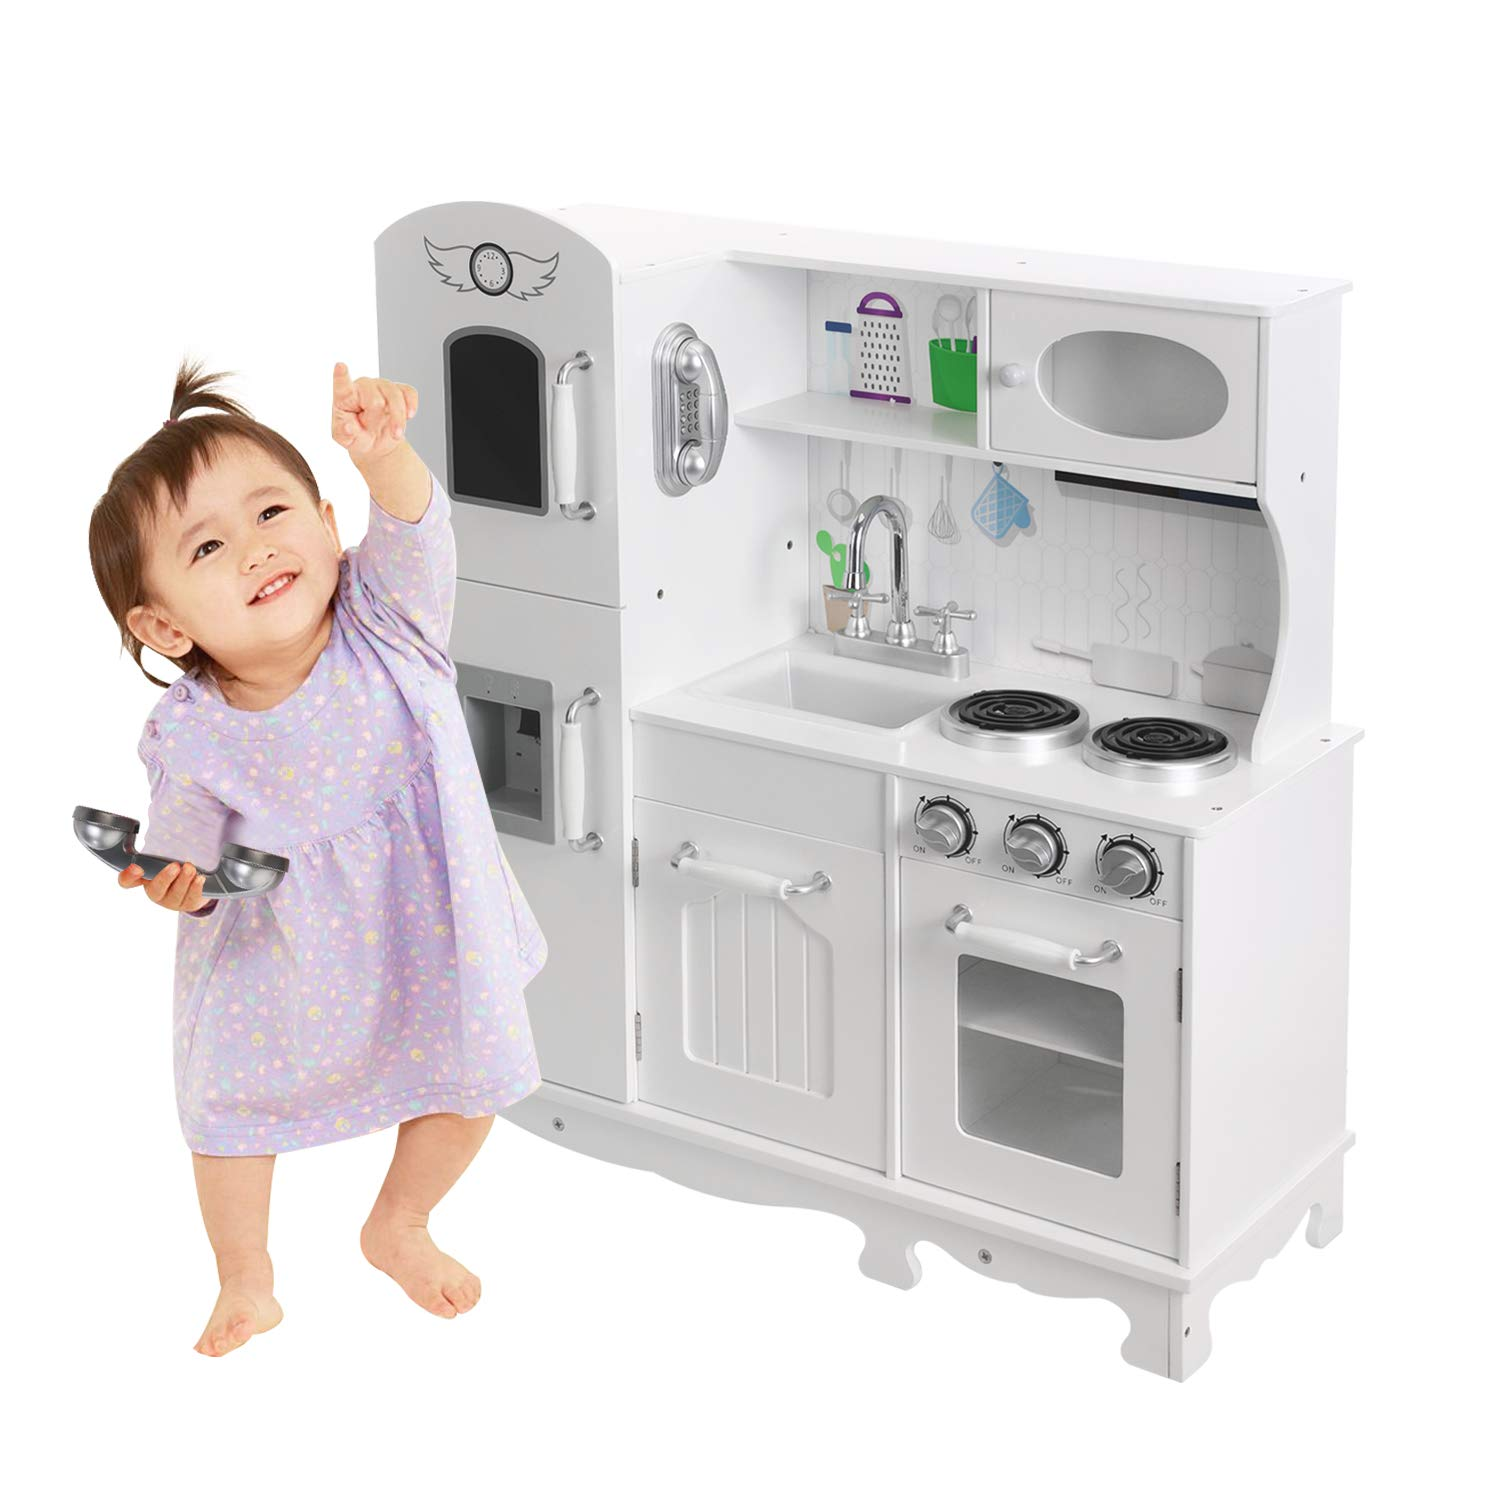 HOMFY Kids Play Kitchen for Toddlers Wooden Toy Kitchen Sets Pretend Kitchen Set with Sounds - White (Refrigerator Kitchen)